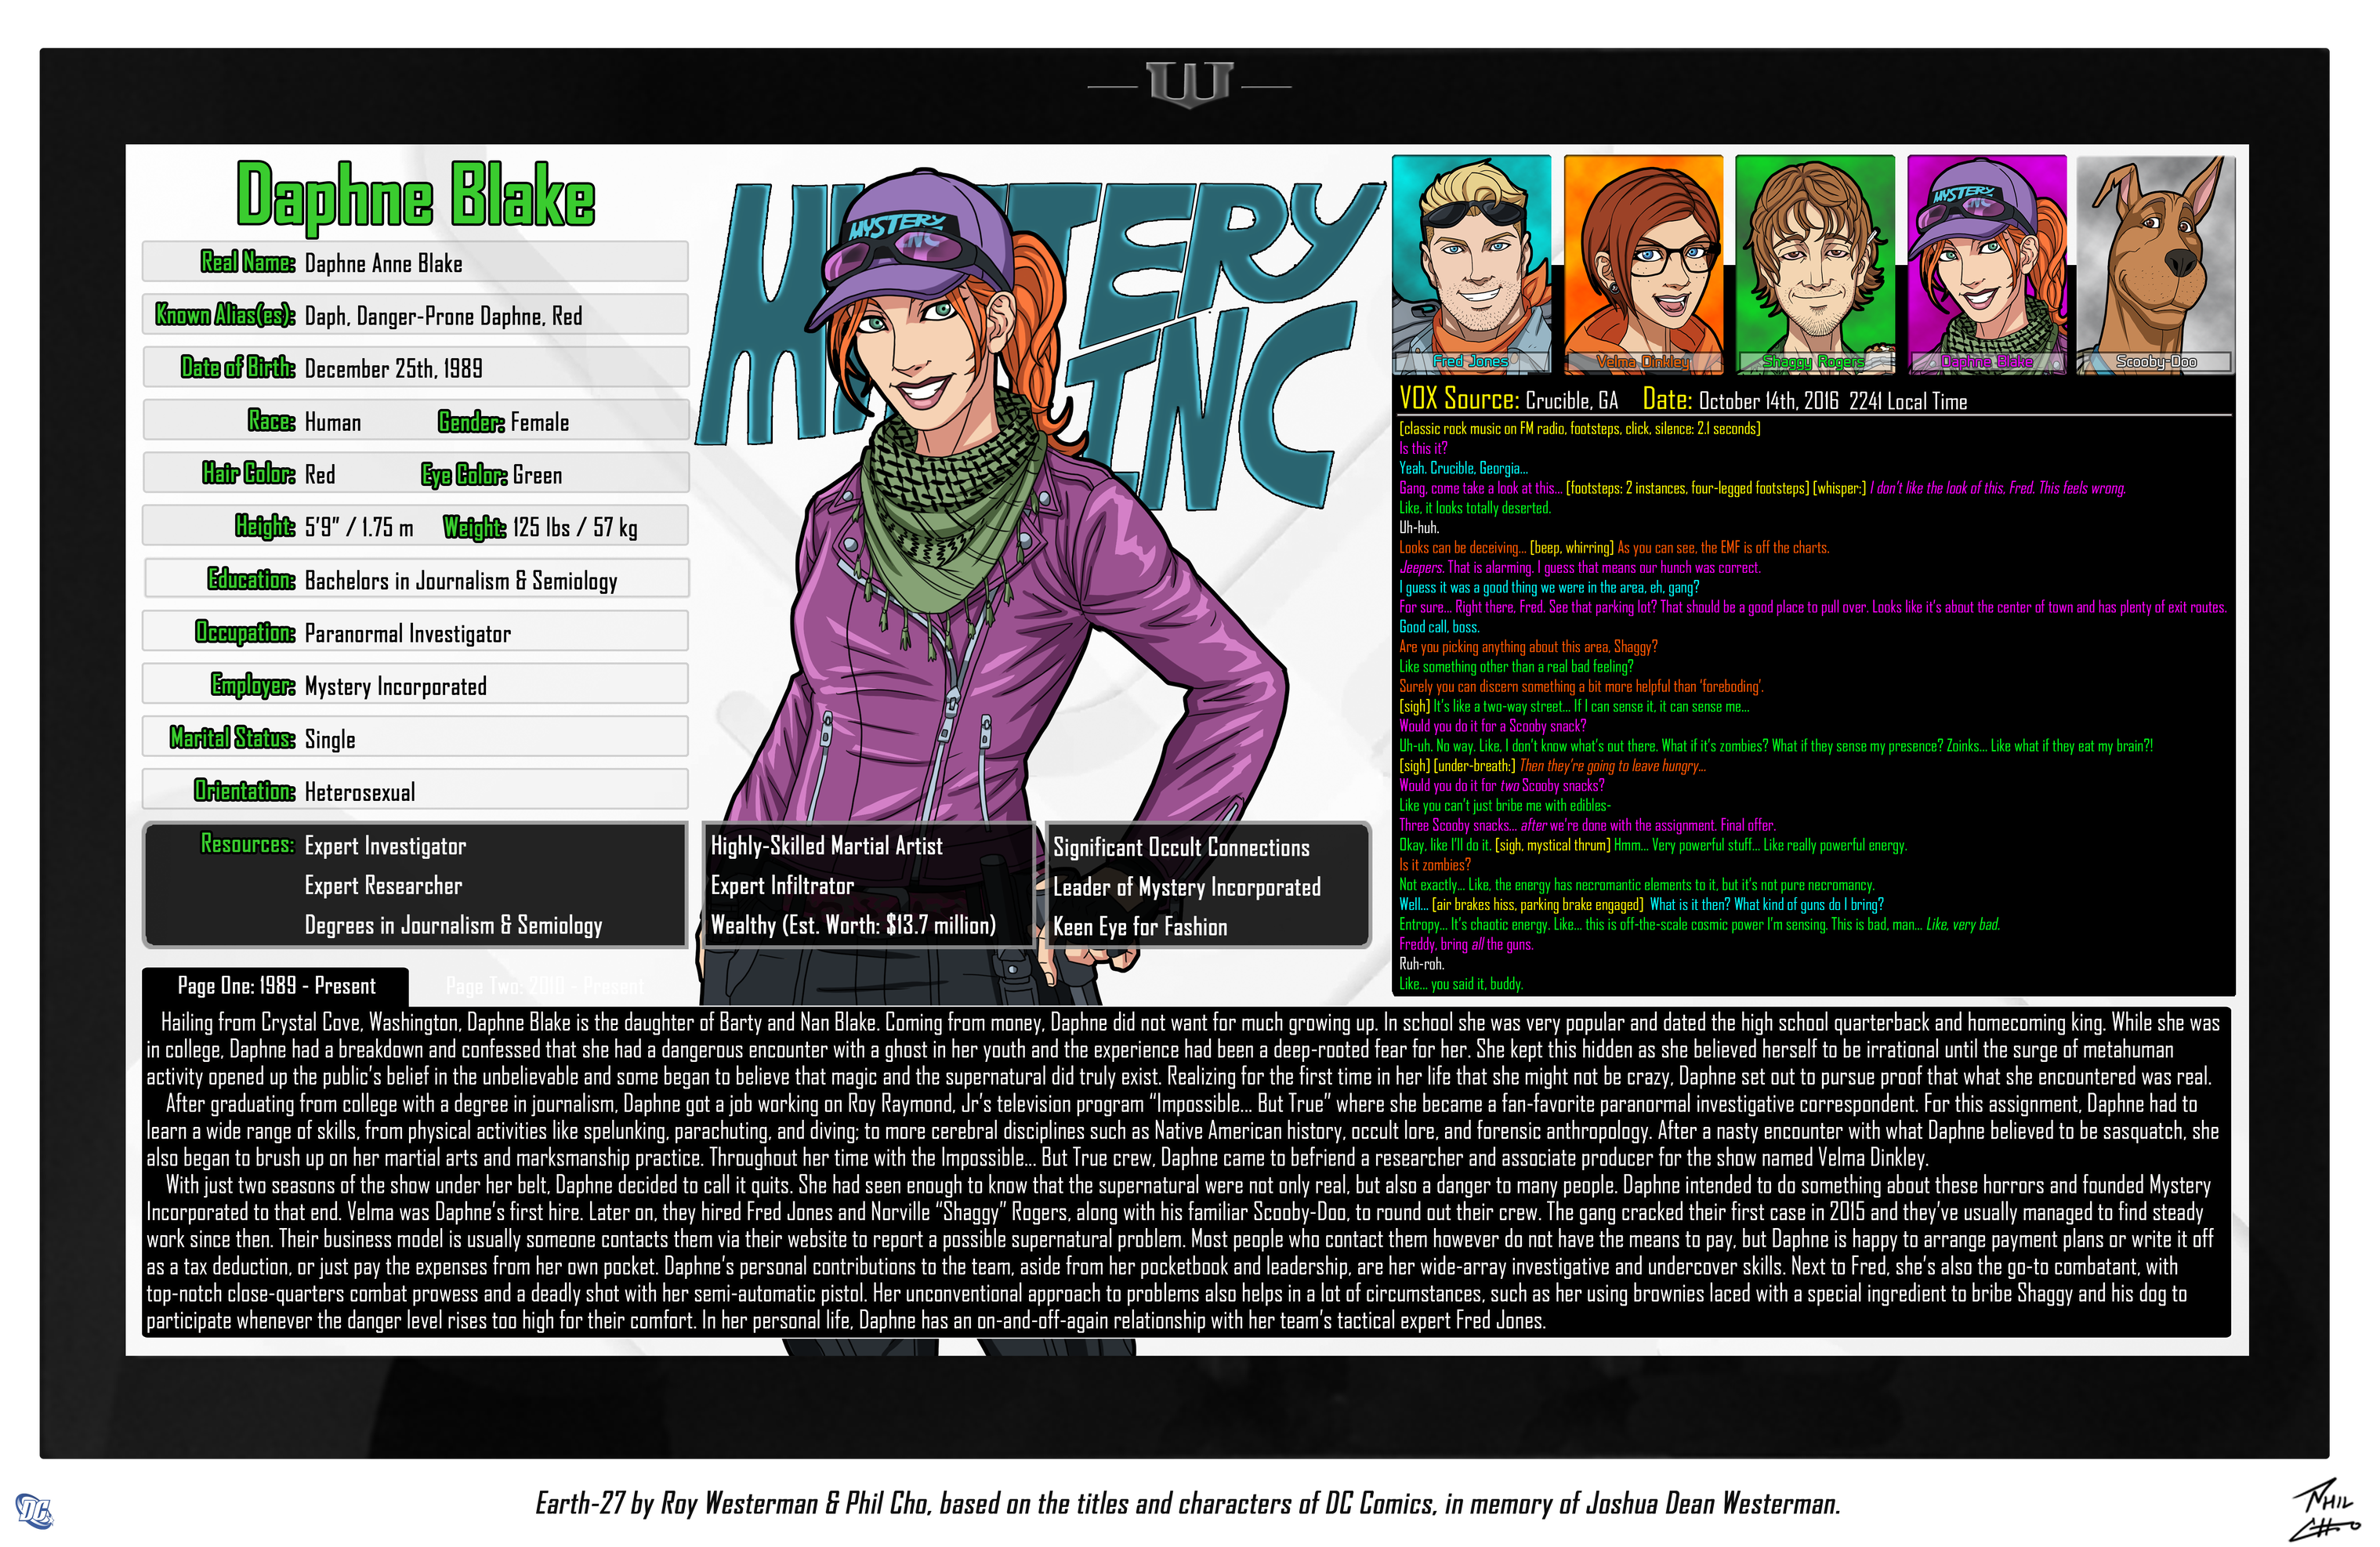 Oracle Files: Daphne Blake